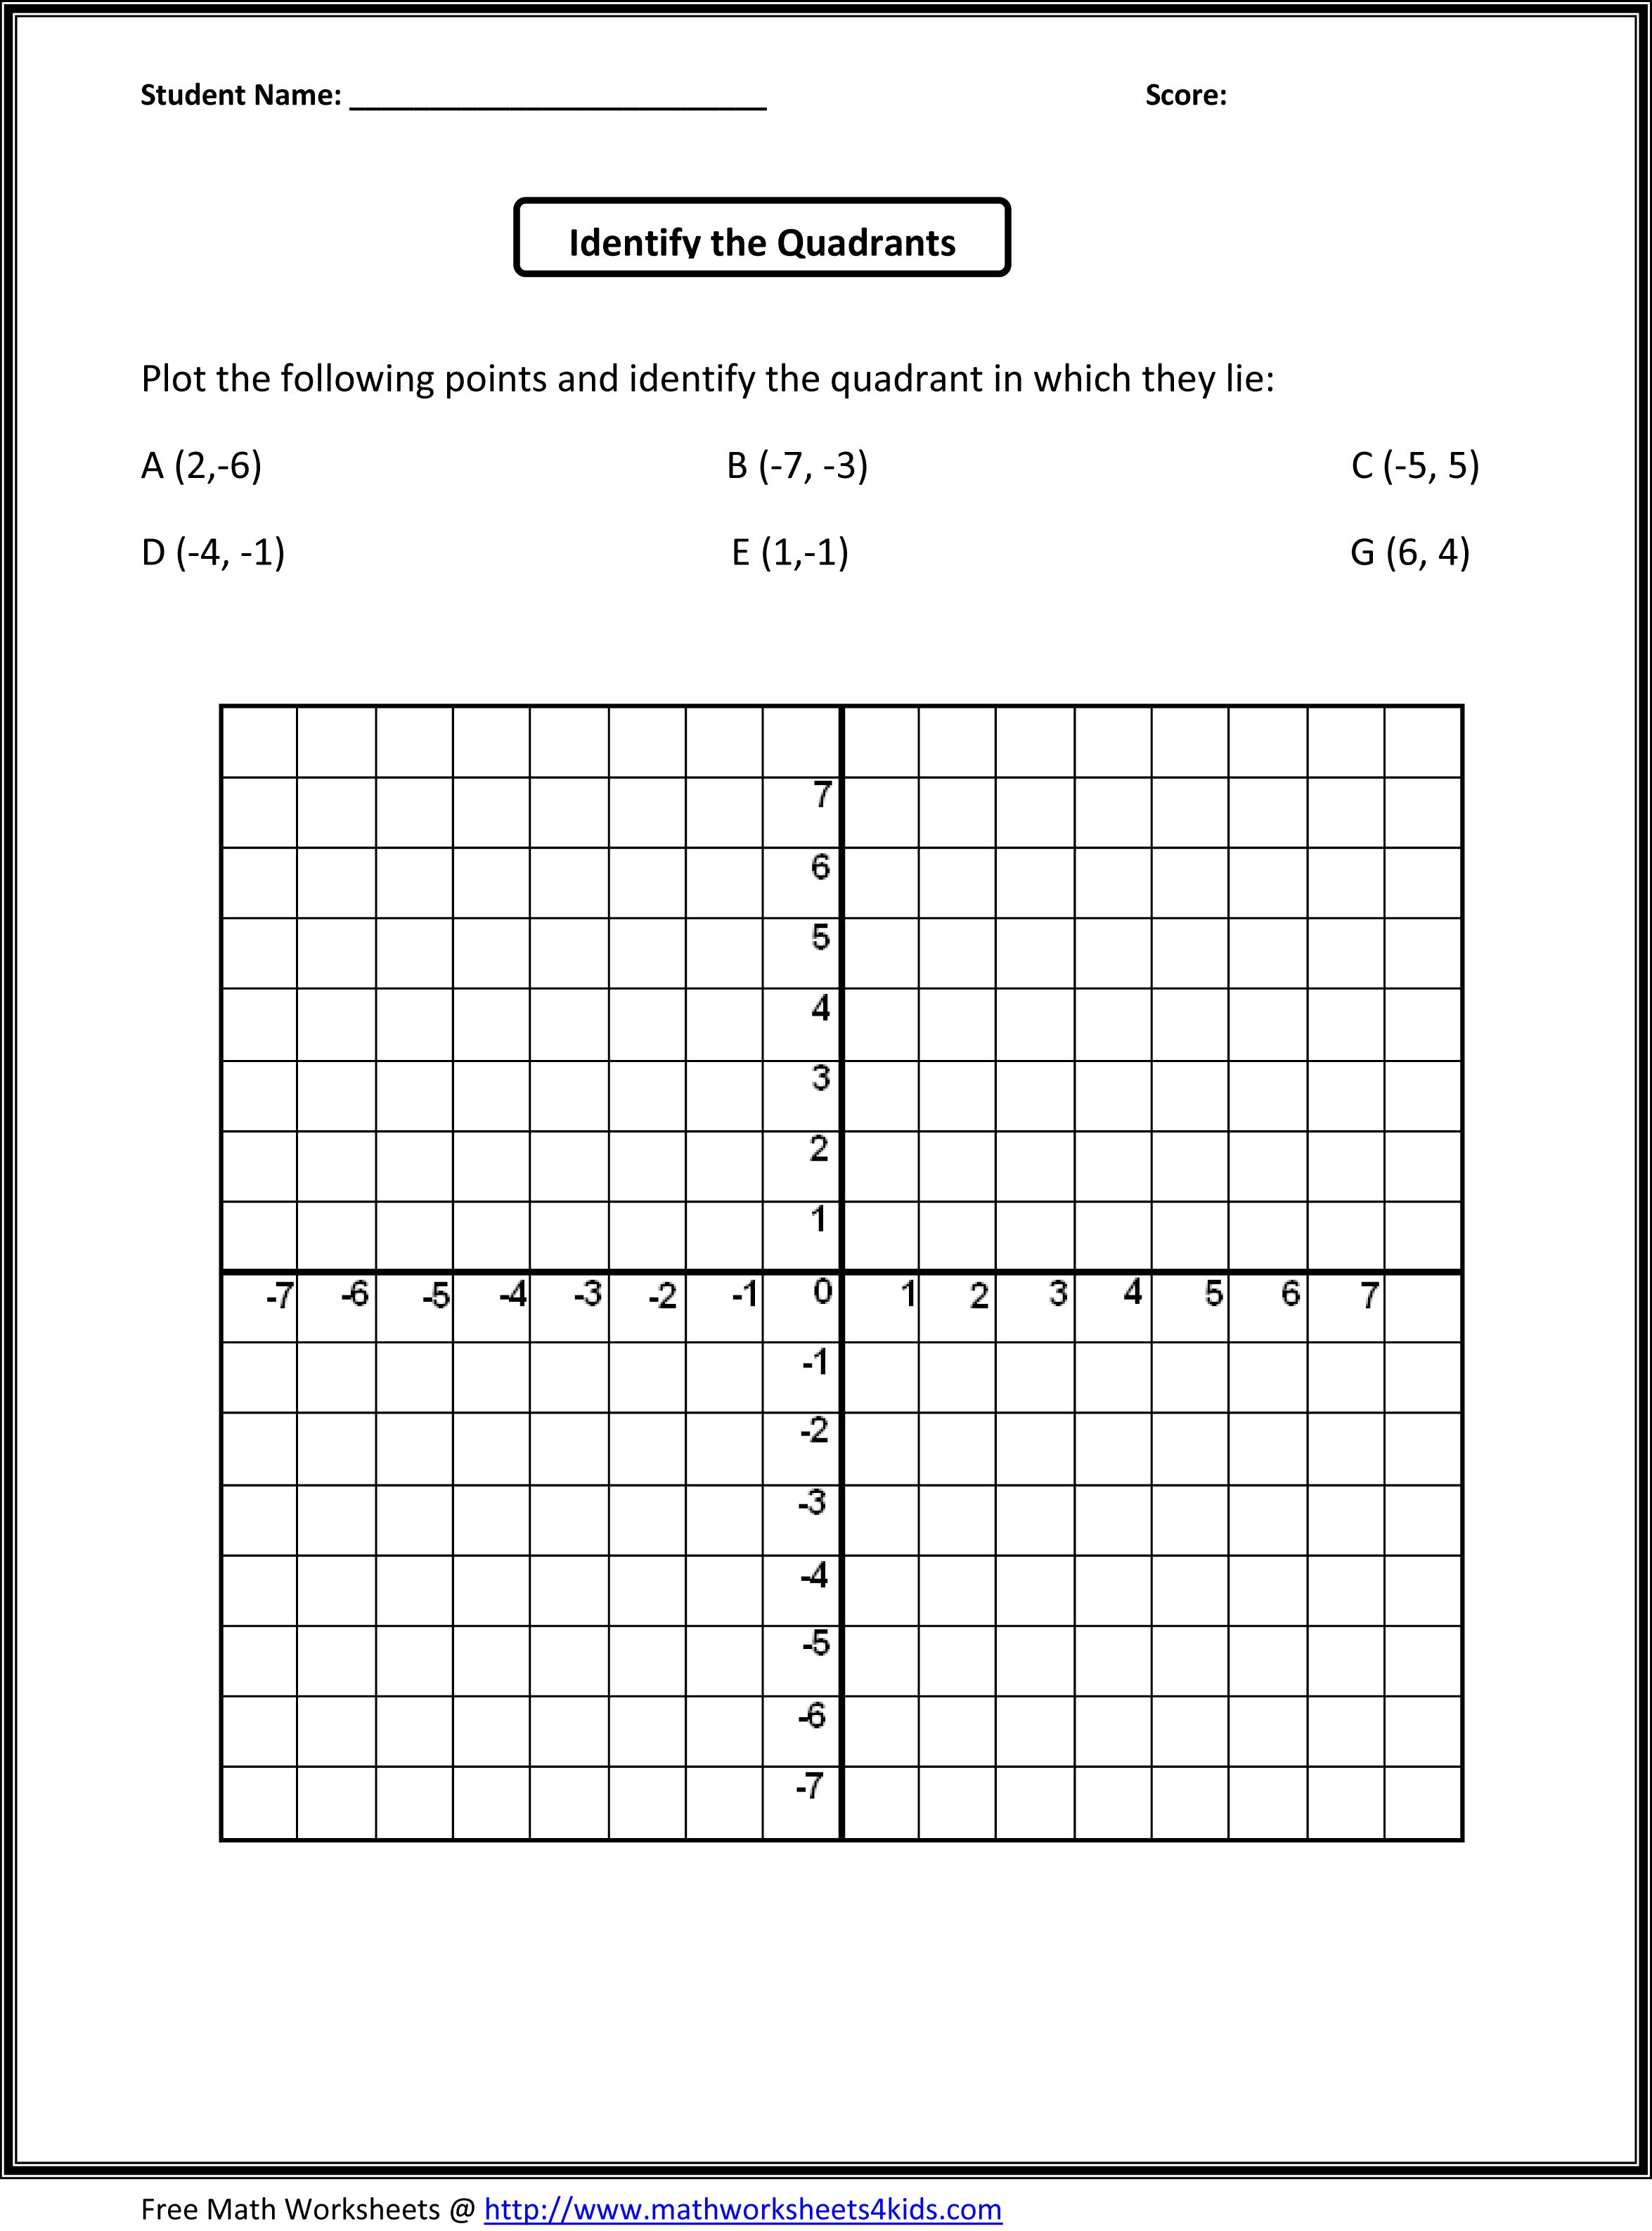 small resolution of Pin on EDUCATIONAL WORK SHEETS 4 KIDS!